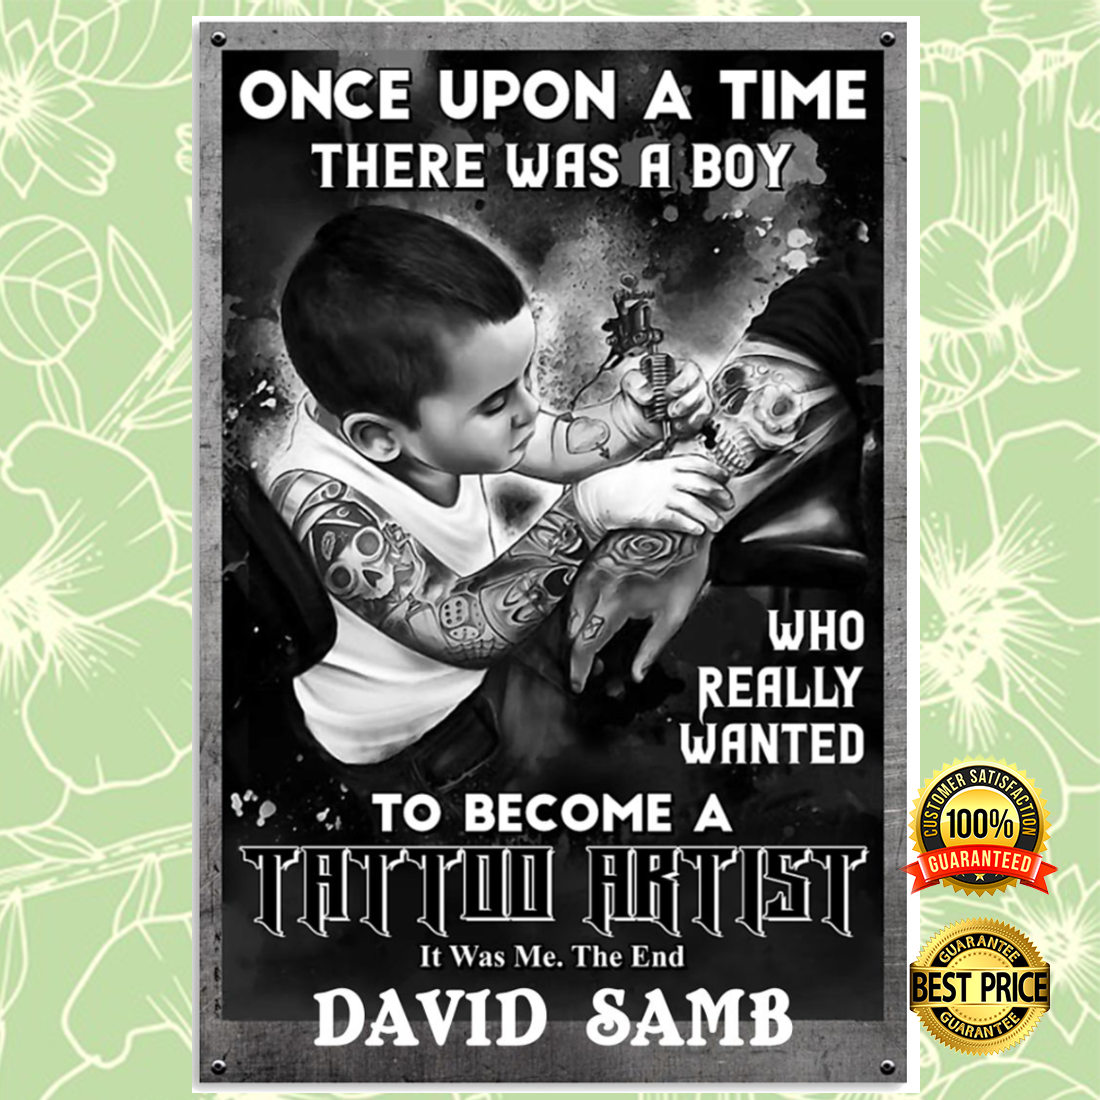 Personalized once upon a time there was a boy who really wanted to become a tattoo artist poster 5